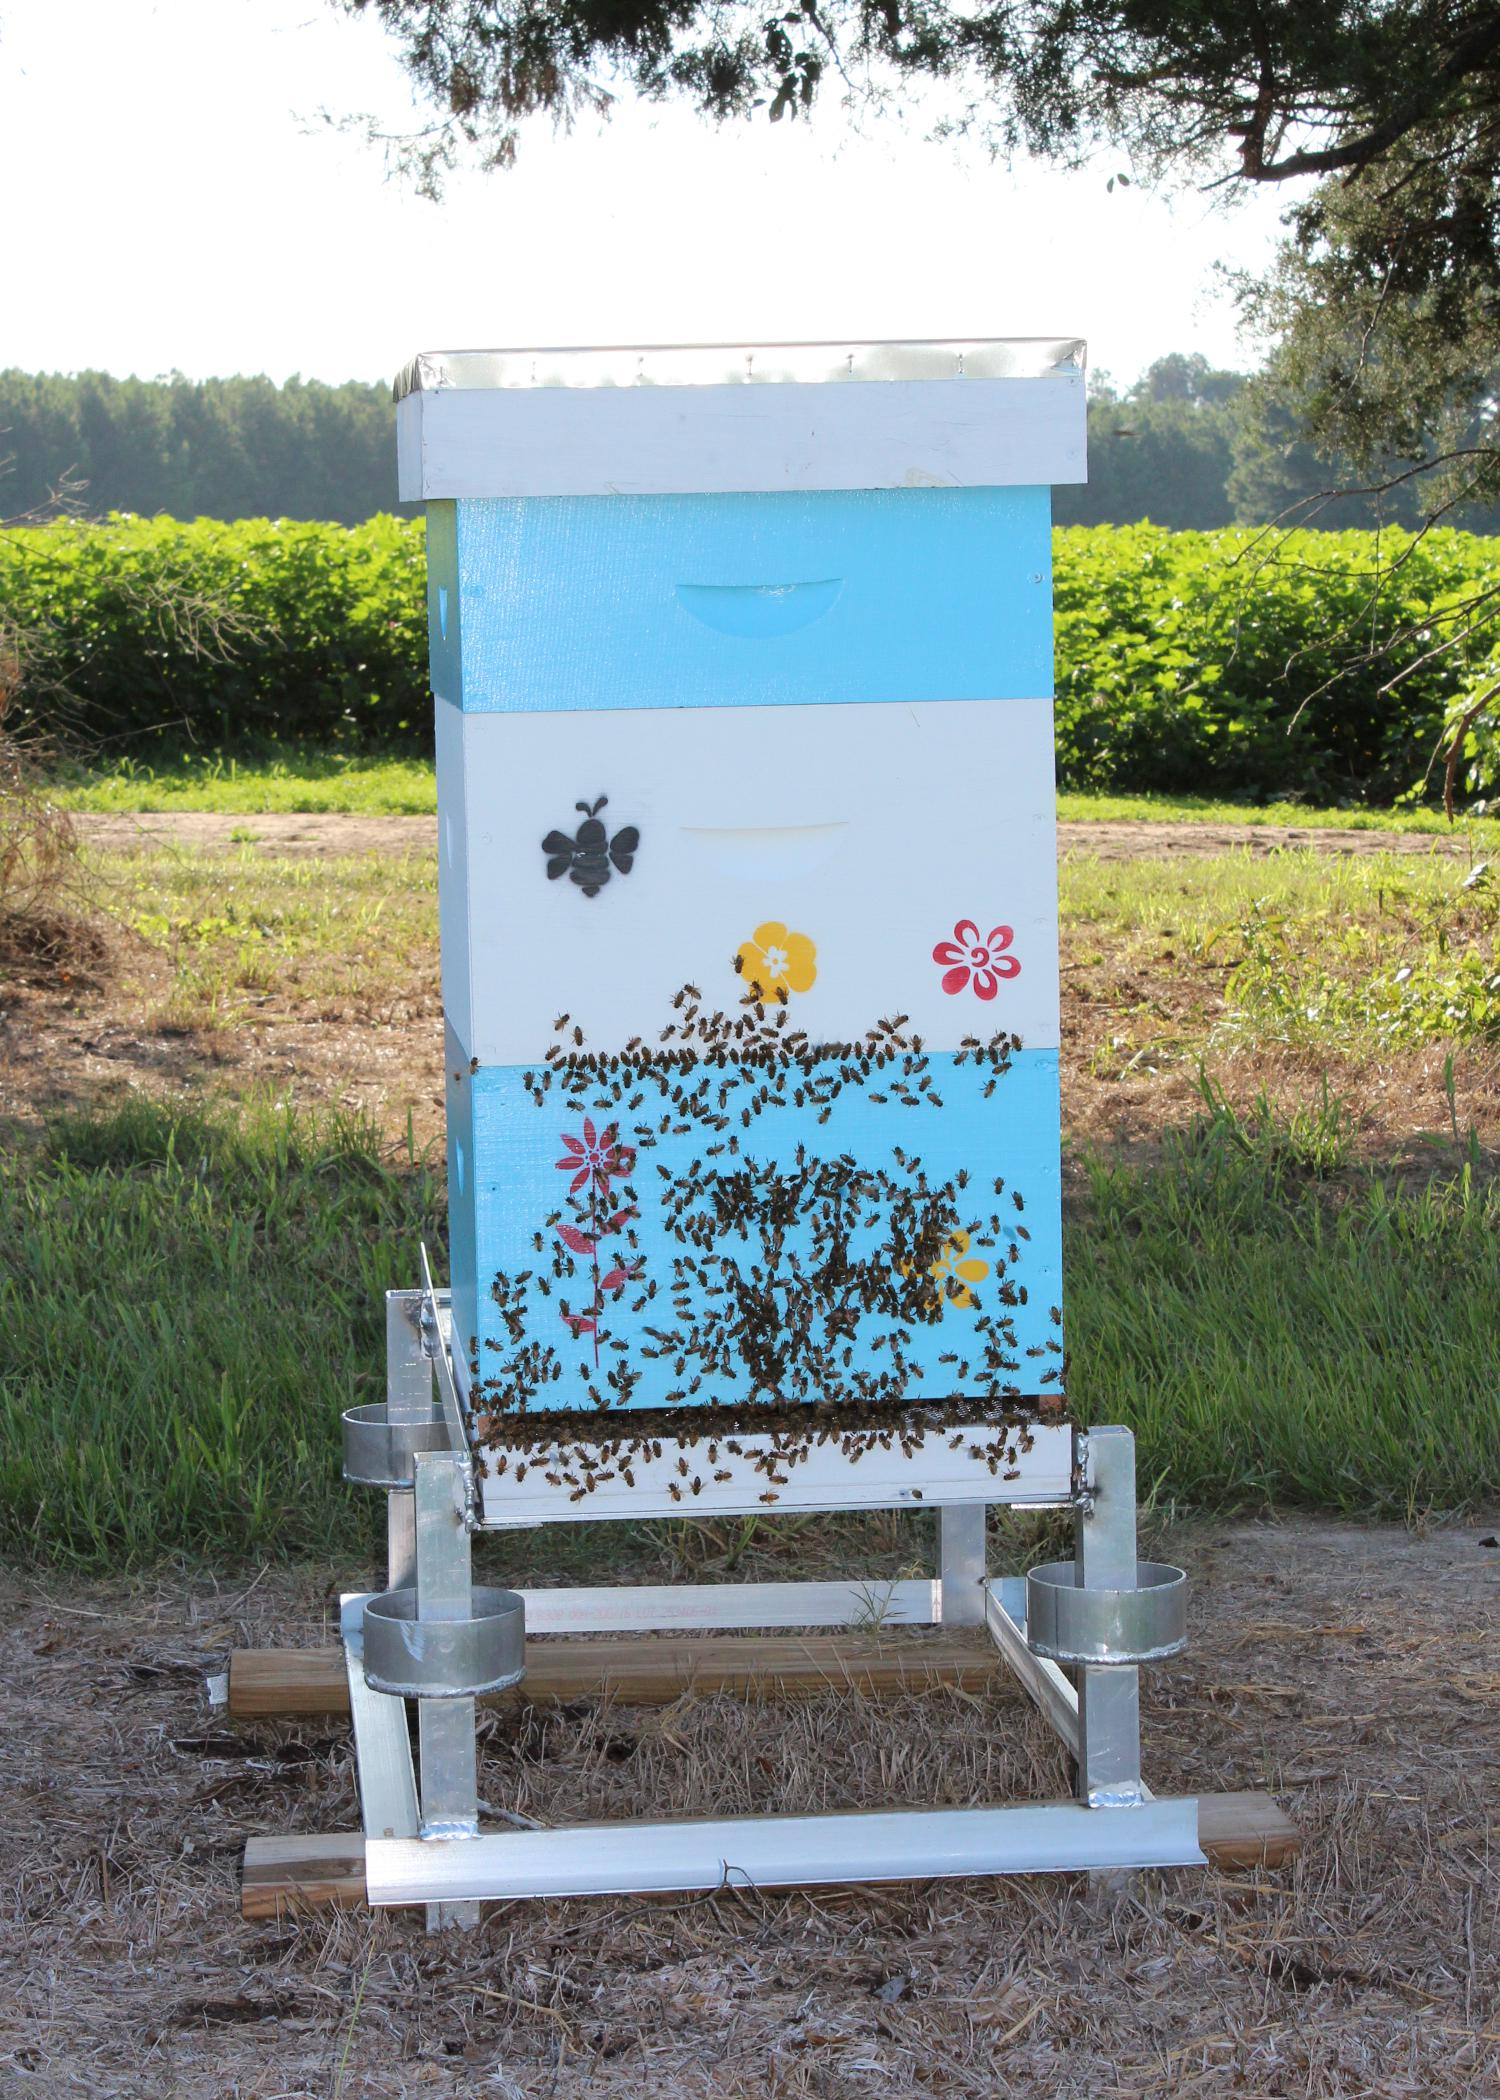 Beekeepers often choose to place bee colonies near row crops, such as this cotton field in Lowndes County, Mississippi, because the plant blooms provide much-needed nectar during the hot summer months. (File Photo by MSU Ag Communications